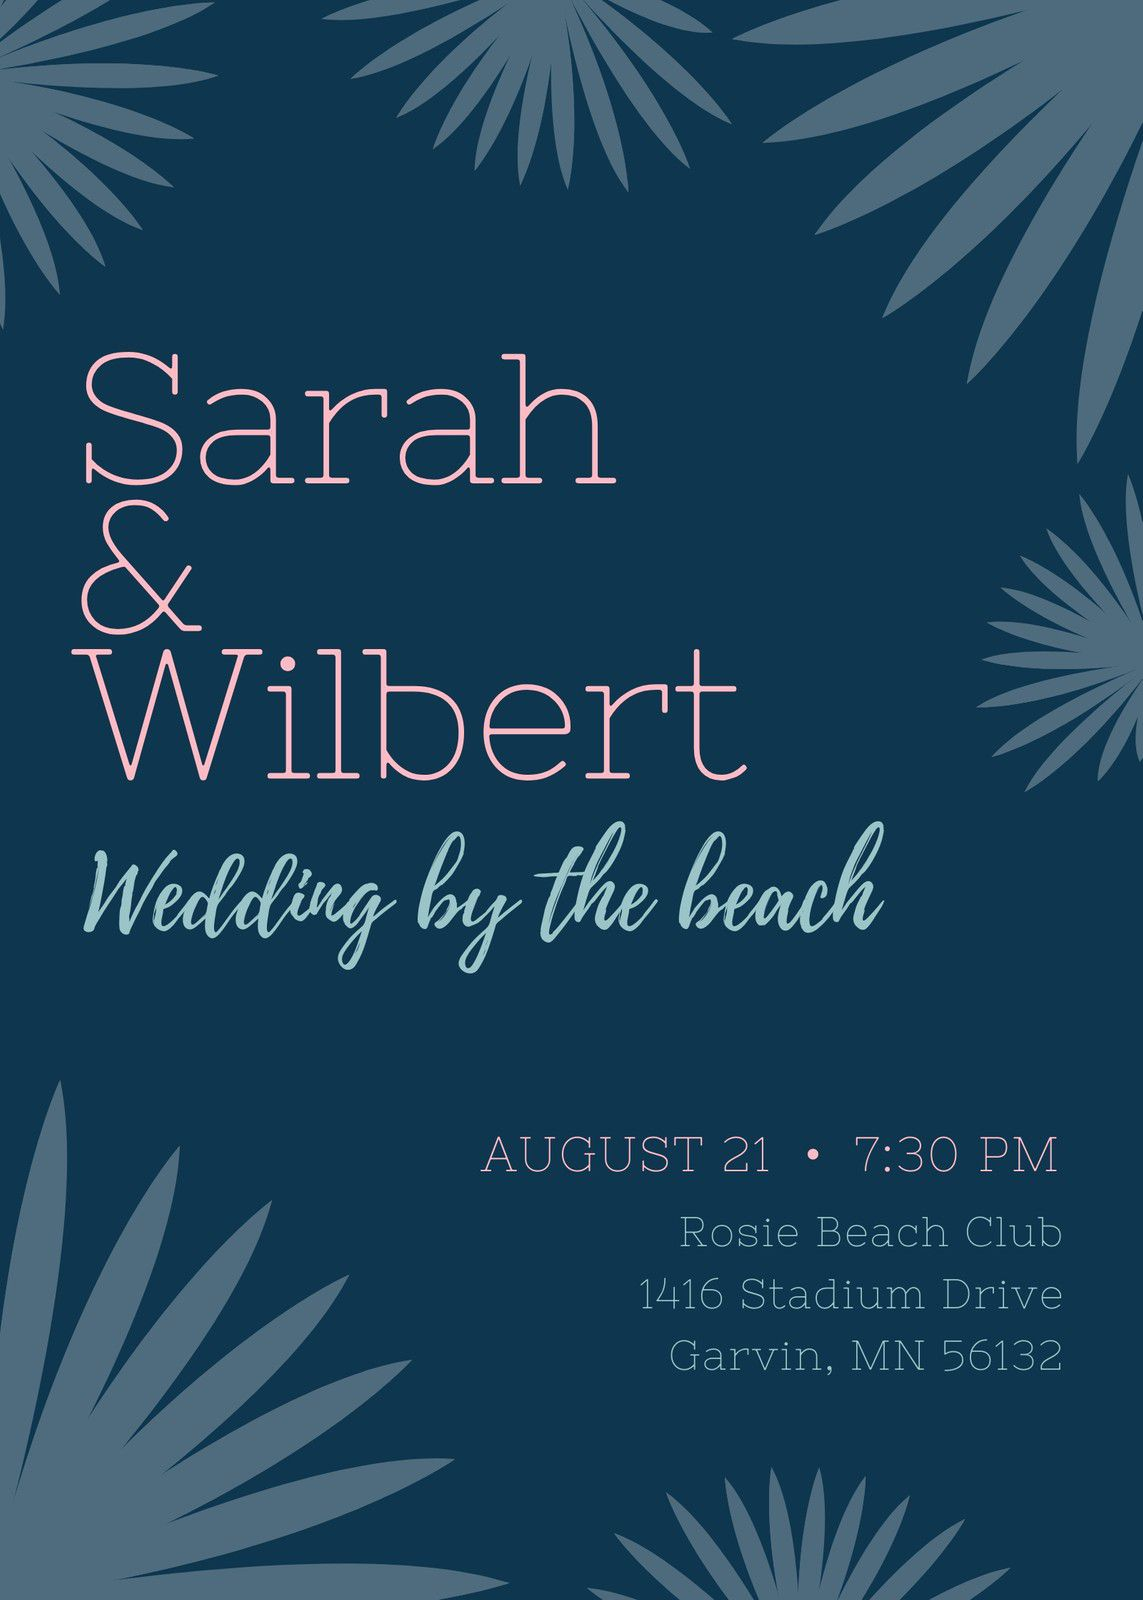 003 Fascinating Beach Wedding Invitation Template Example  Templates Free Download For WordFull